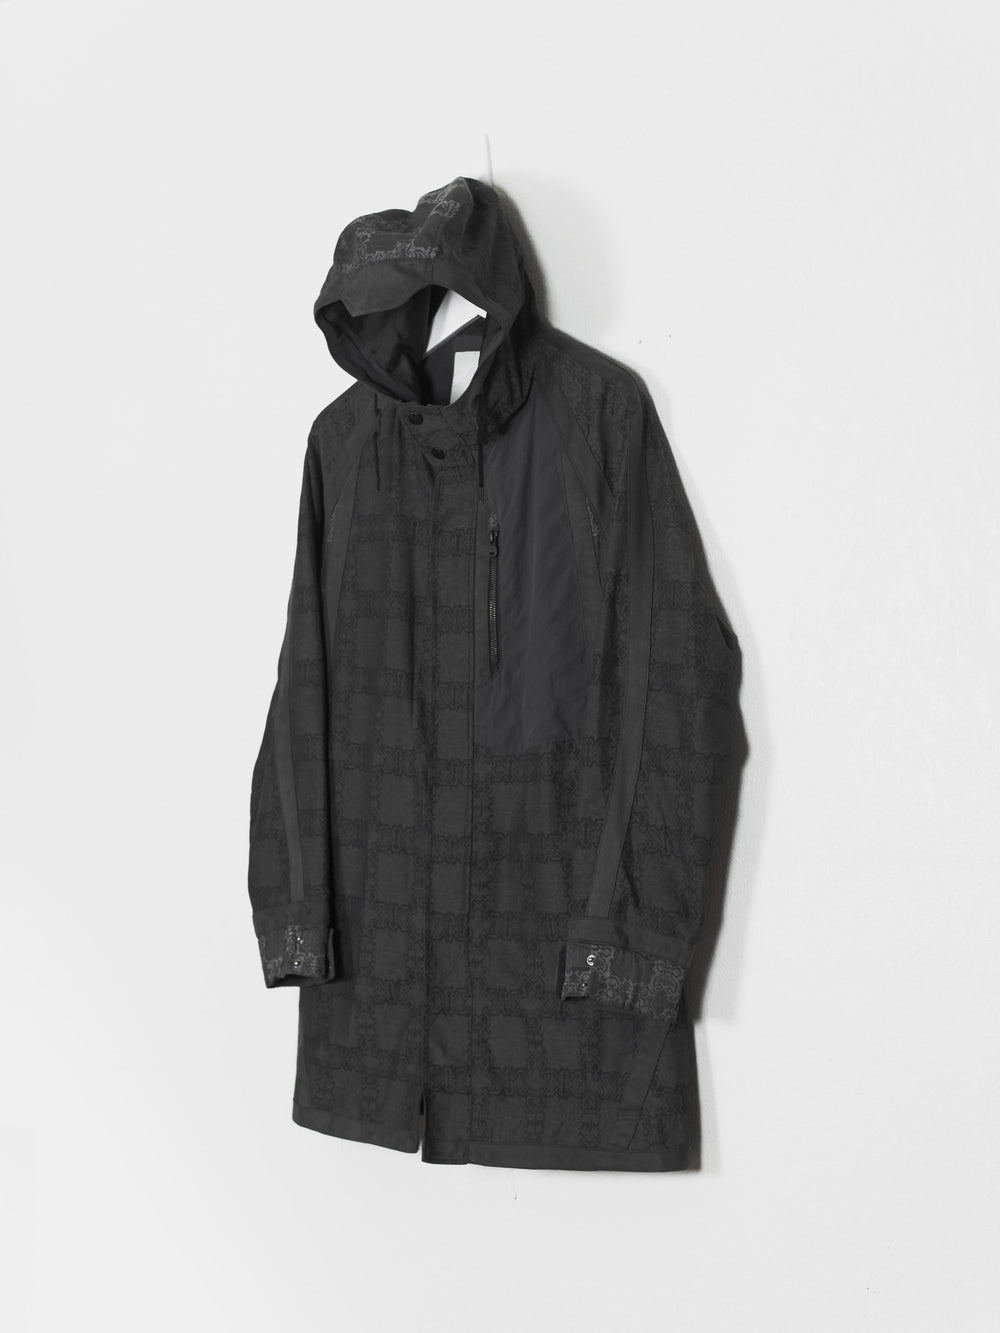 White Mountaineering SS12 Jacquard Fishtail Parka